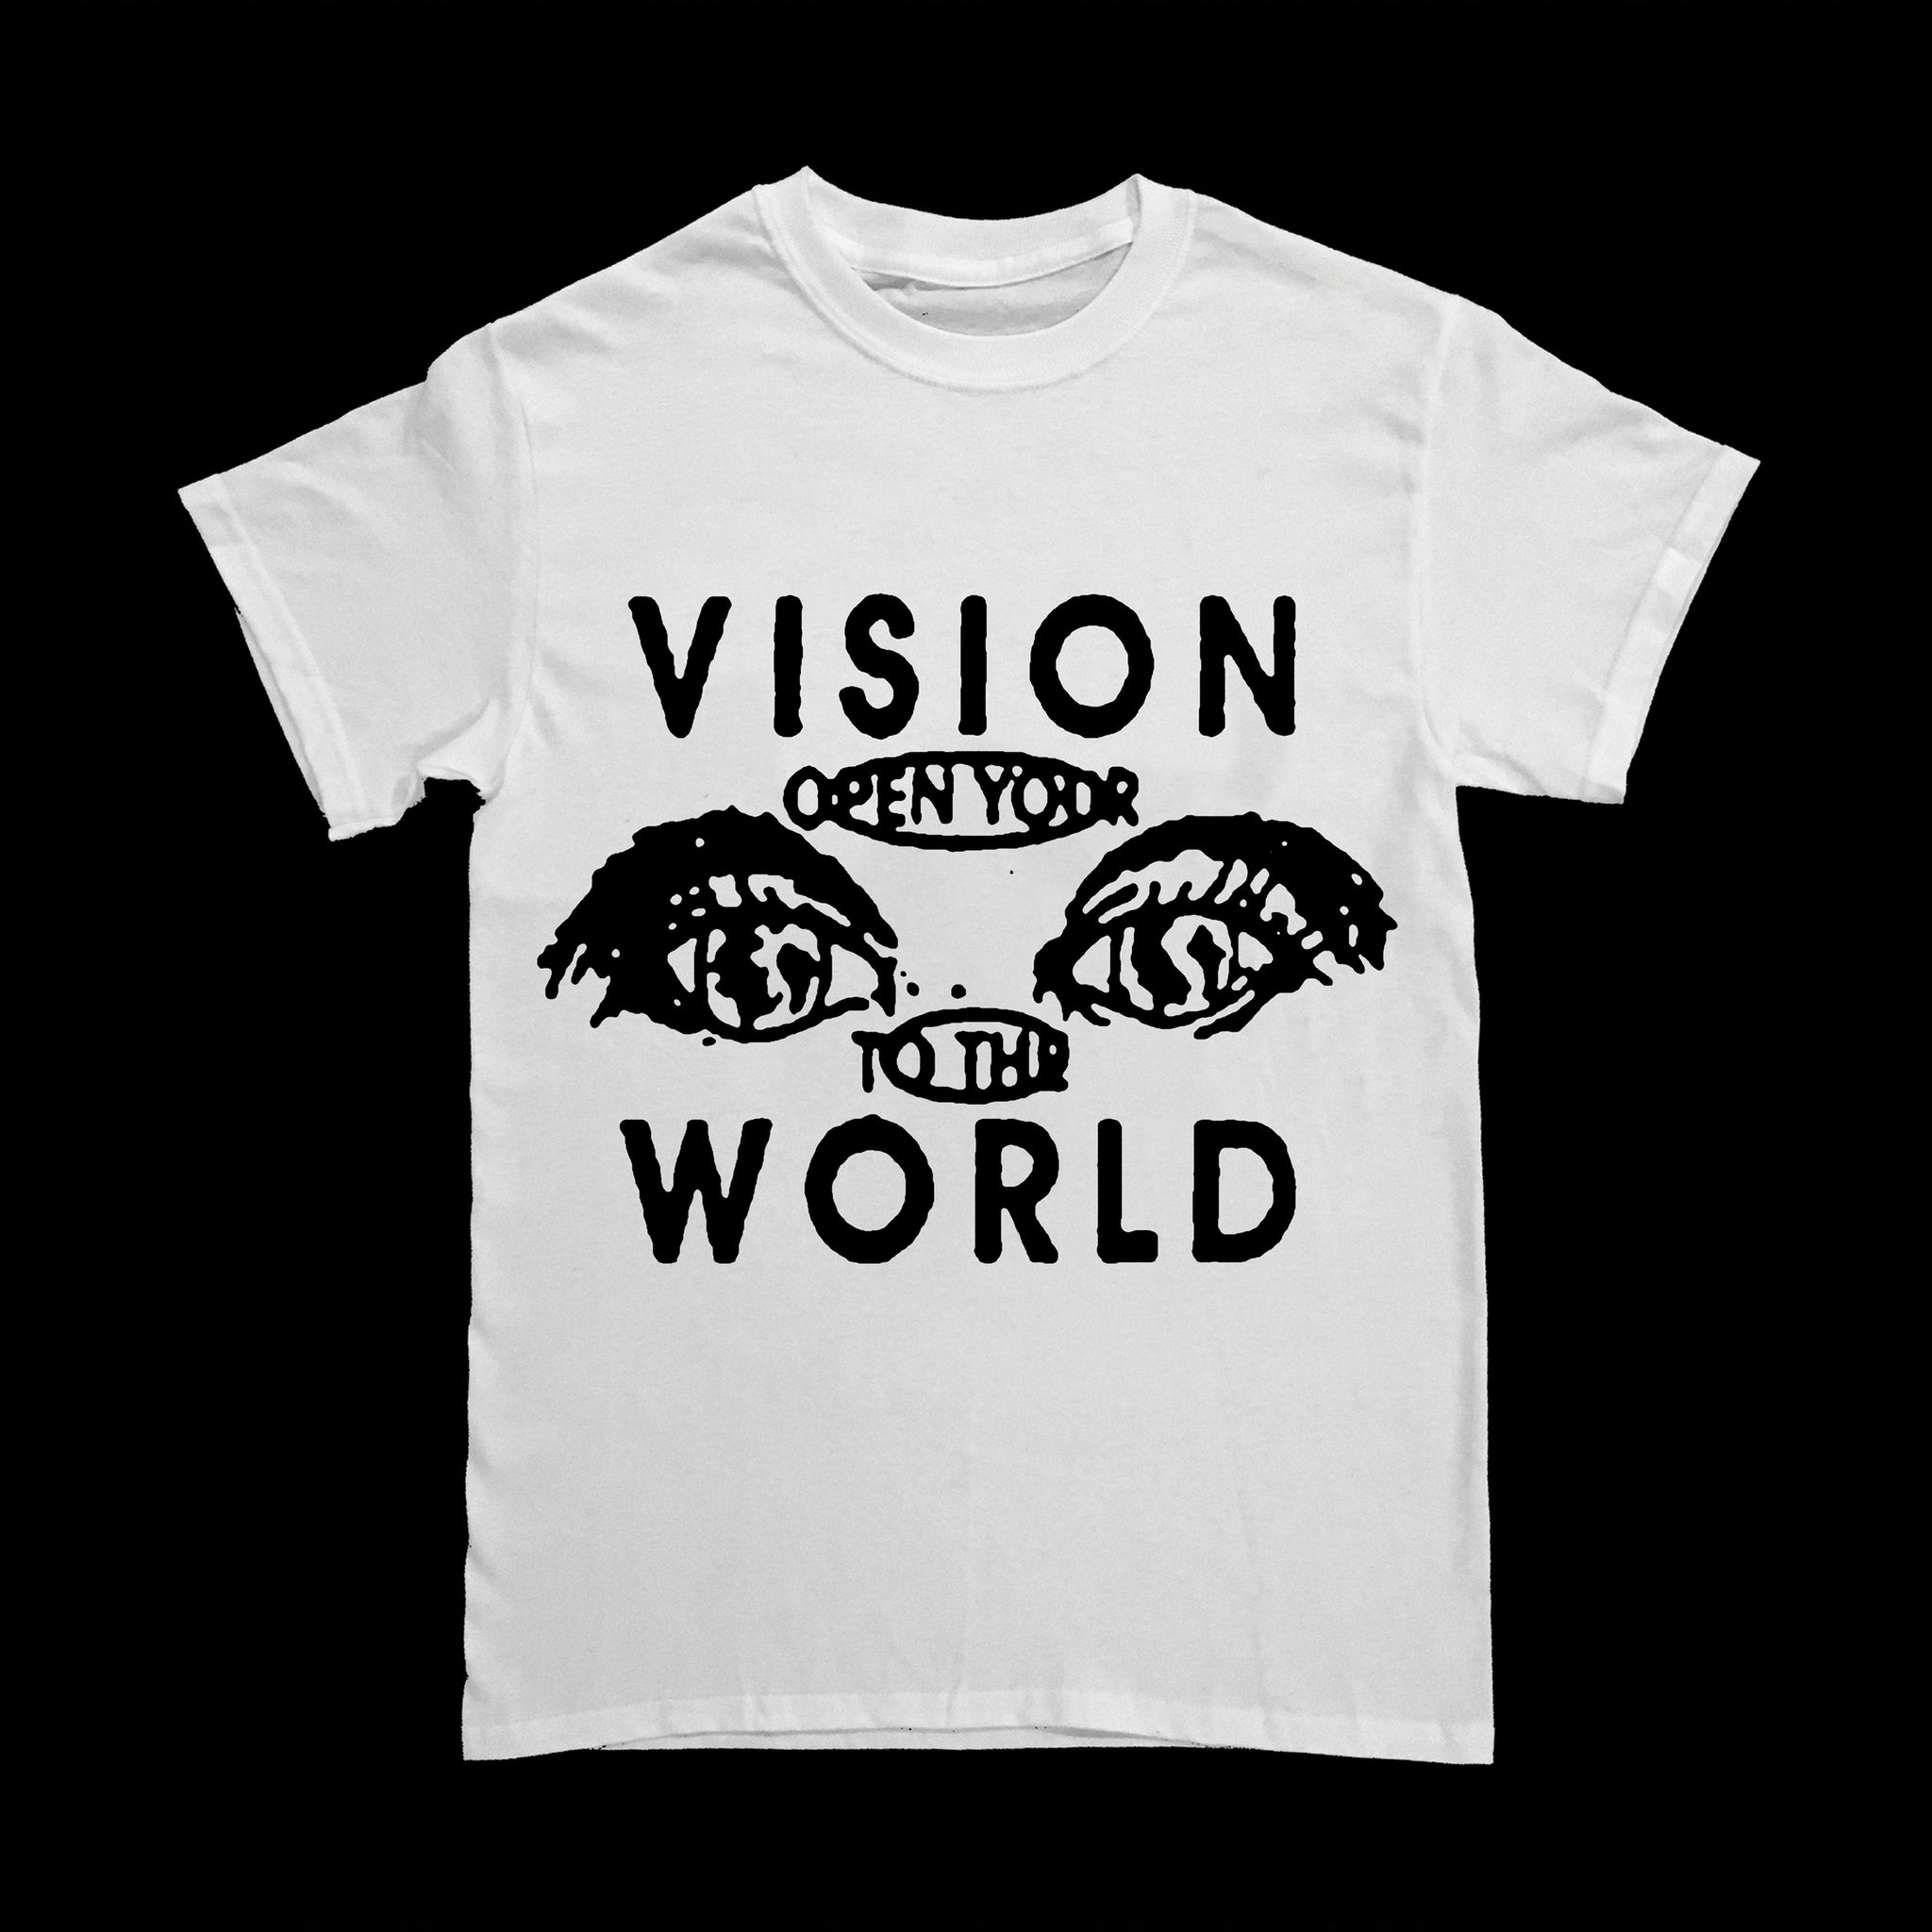 """Open Your Eyes to the World"" T-shirt by Jen Shear"